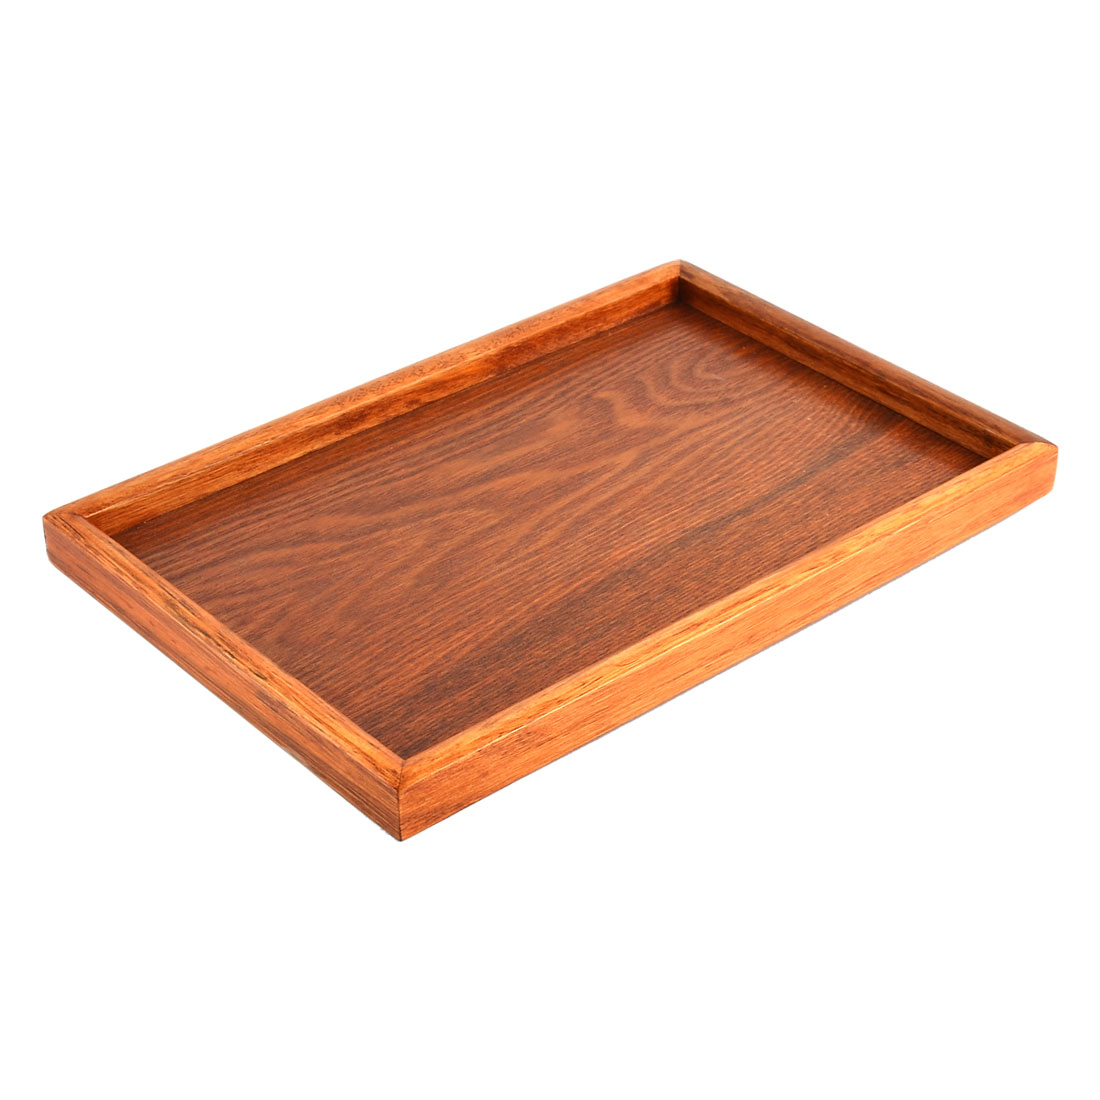 Restaurant Wood Grain Pattern Rectangle Shape Coffee Tea Serving Tray Container